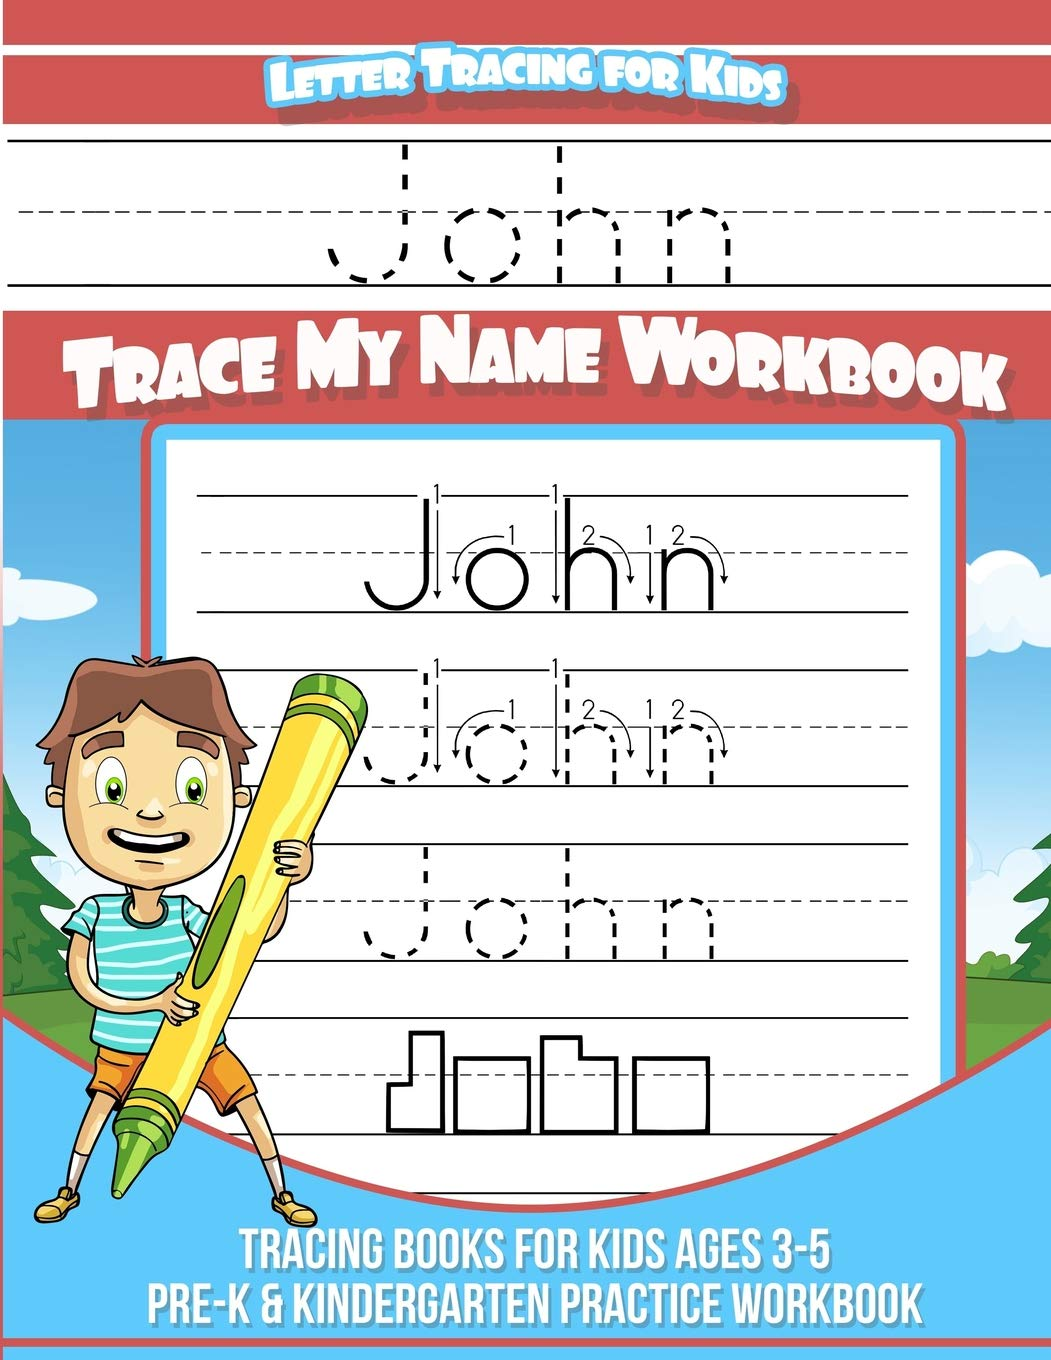 John Letter Tracing for Kids Trace my Name Workbook: Tracing Books for Kids ages 3 - 5 Pre-K & Kindergarten Practice Workbook PDF